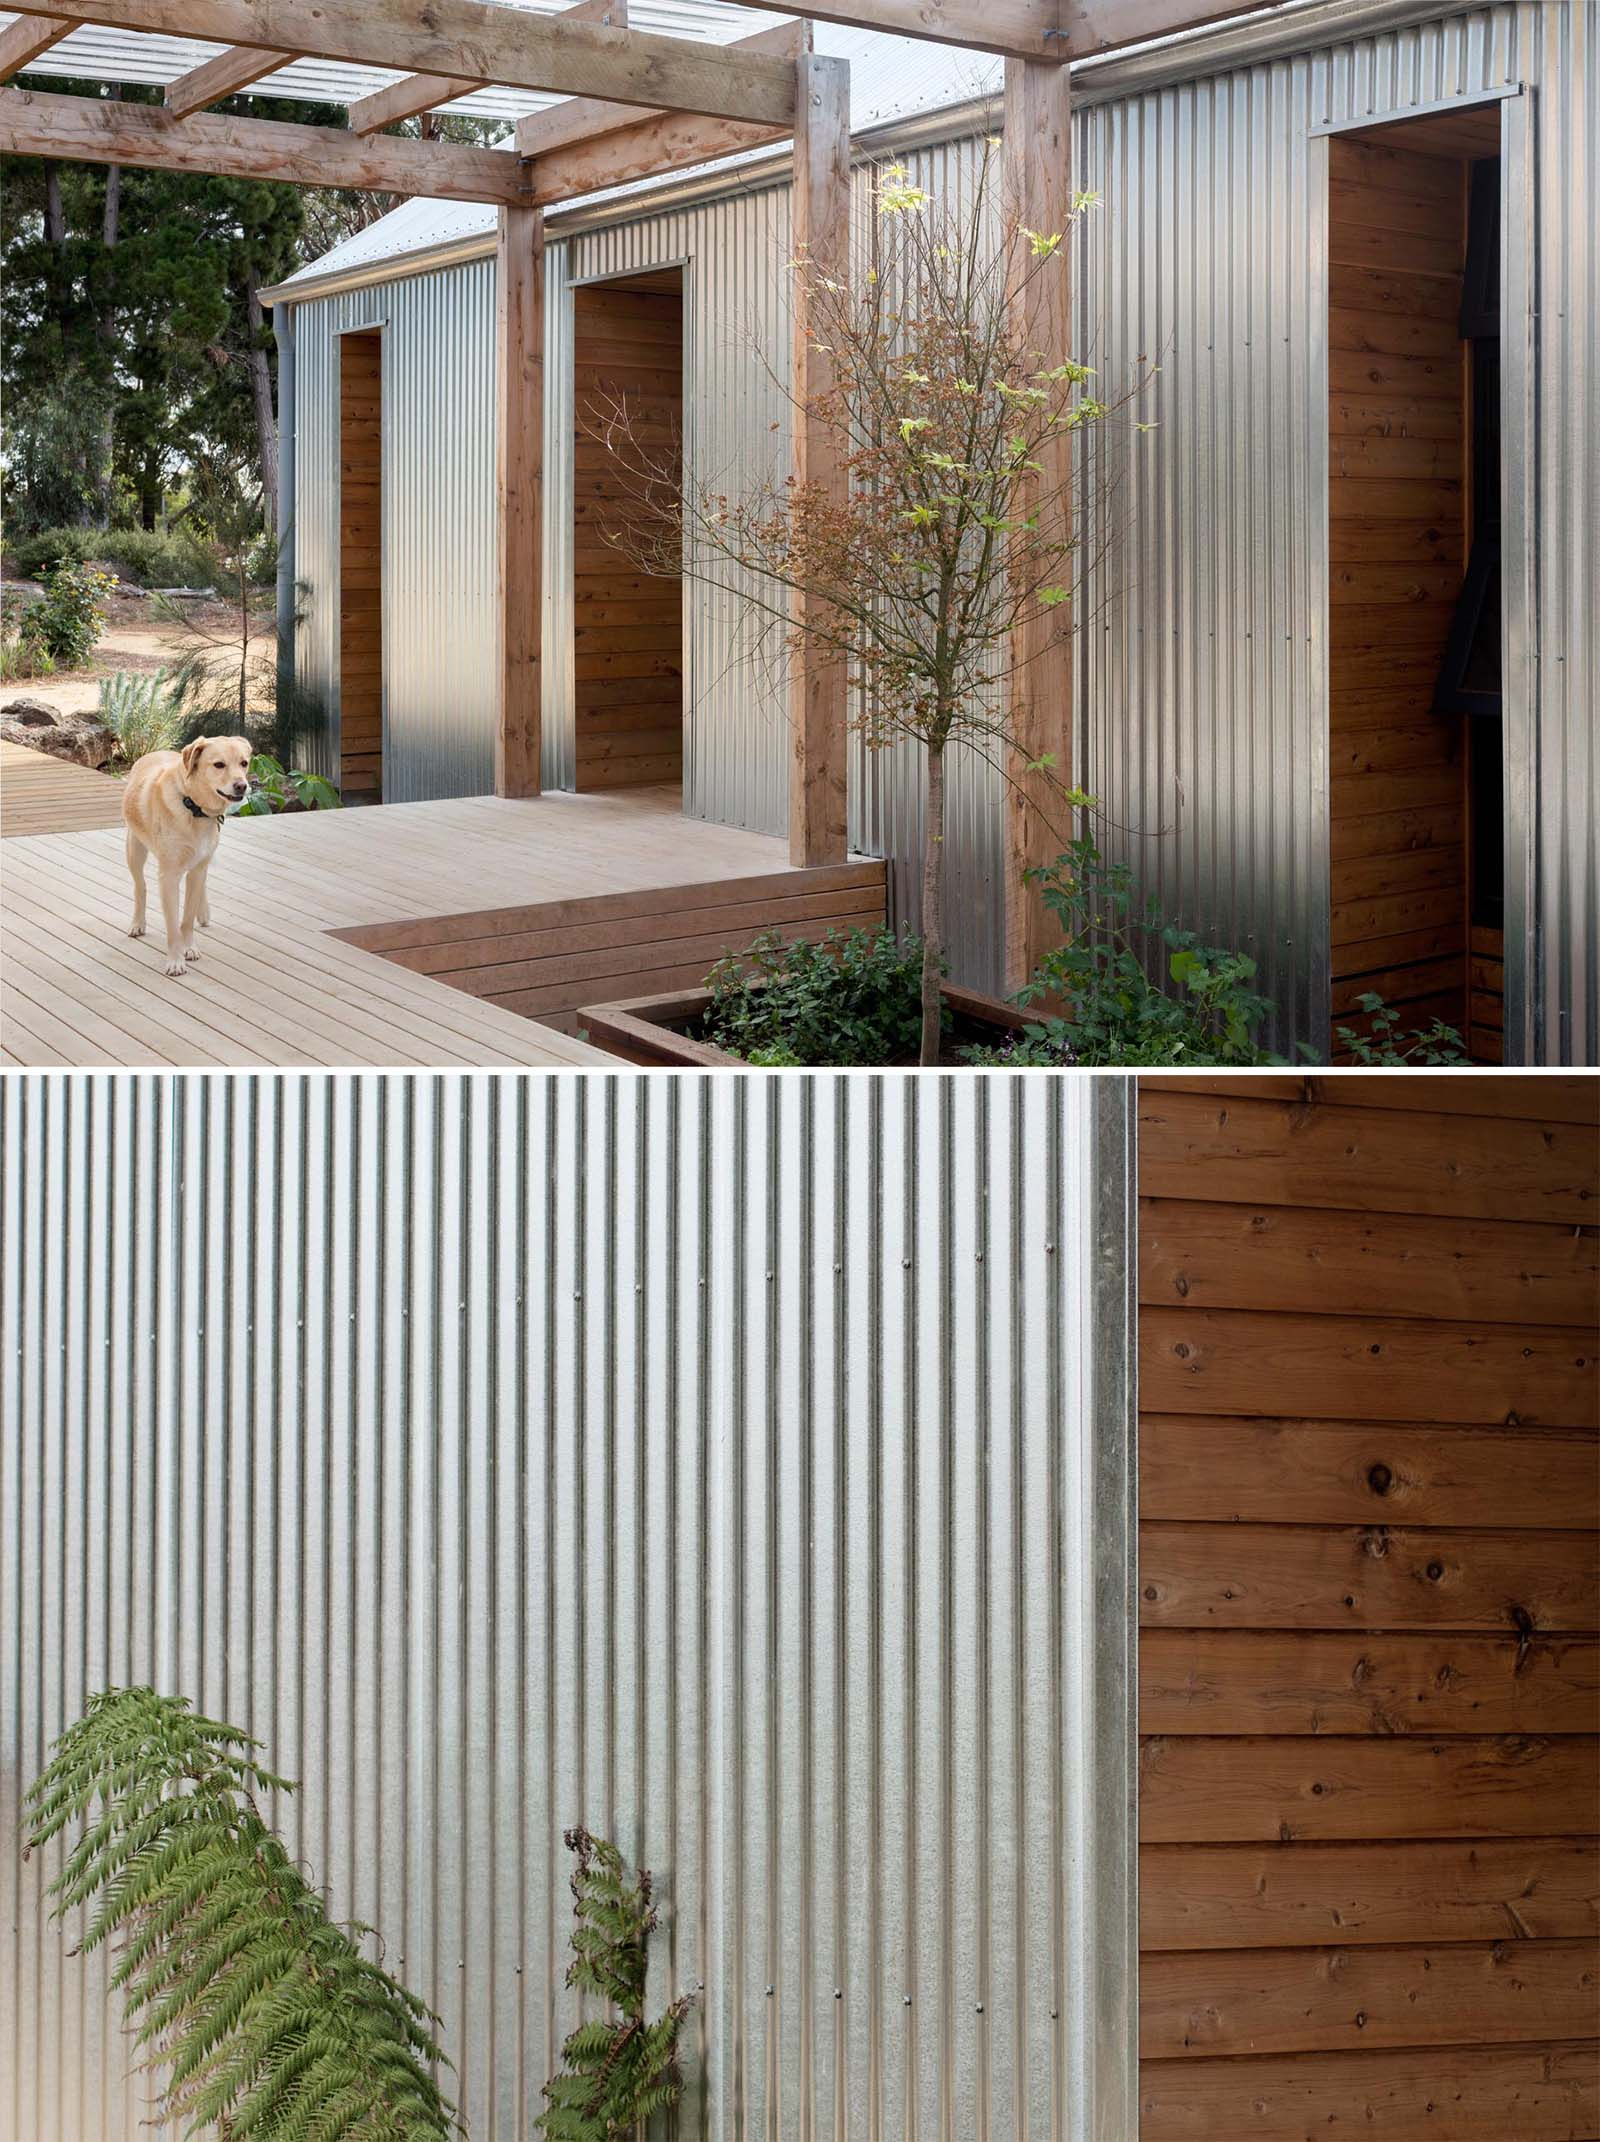 Corrugated metal and wood siding on a modern home.